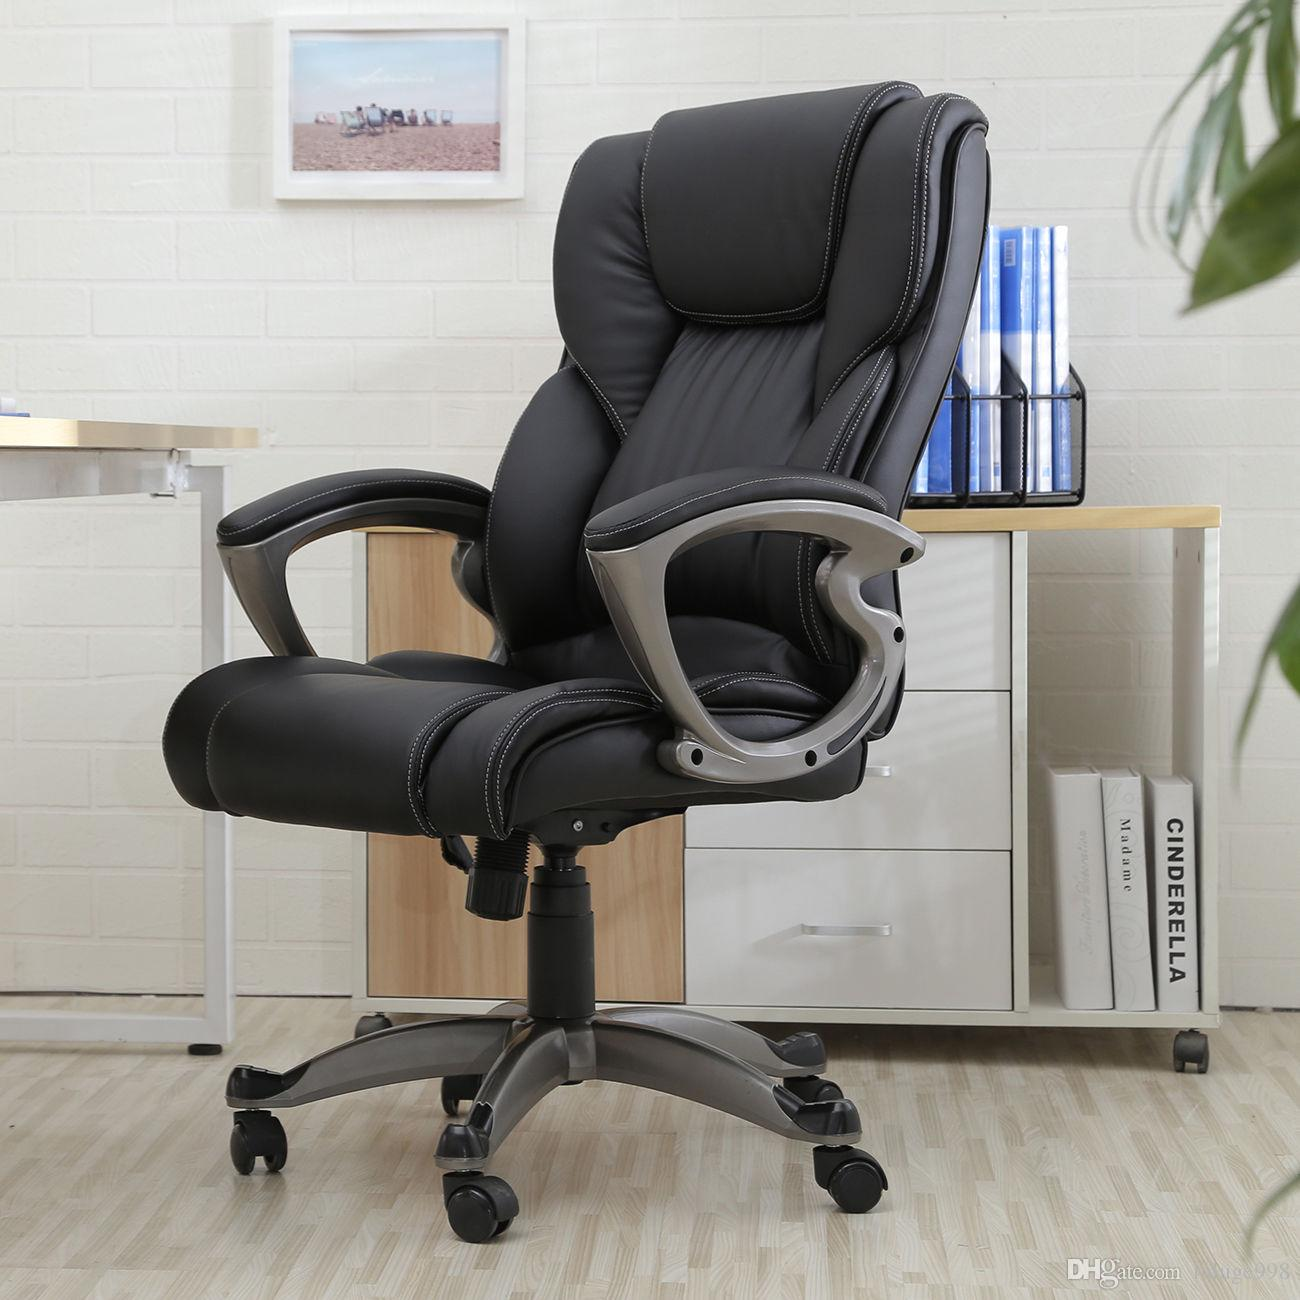 pu leather office chair west elm black high back executive task ergonomic computer desk online with 81 15 piece on luluge998 s store dhgate com